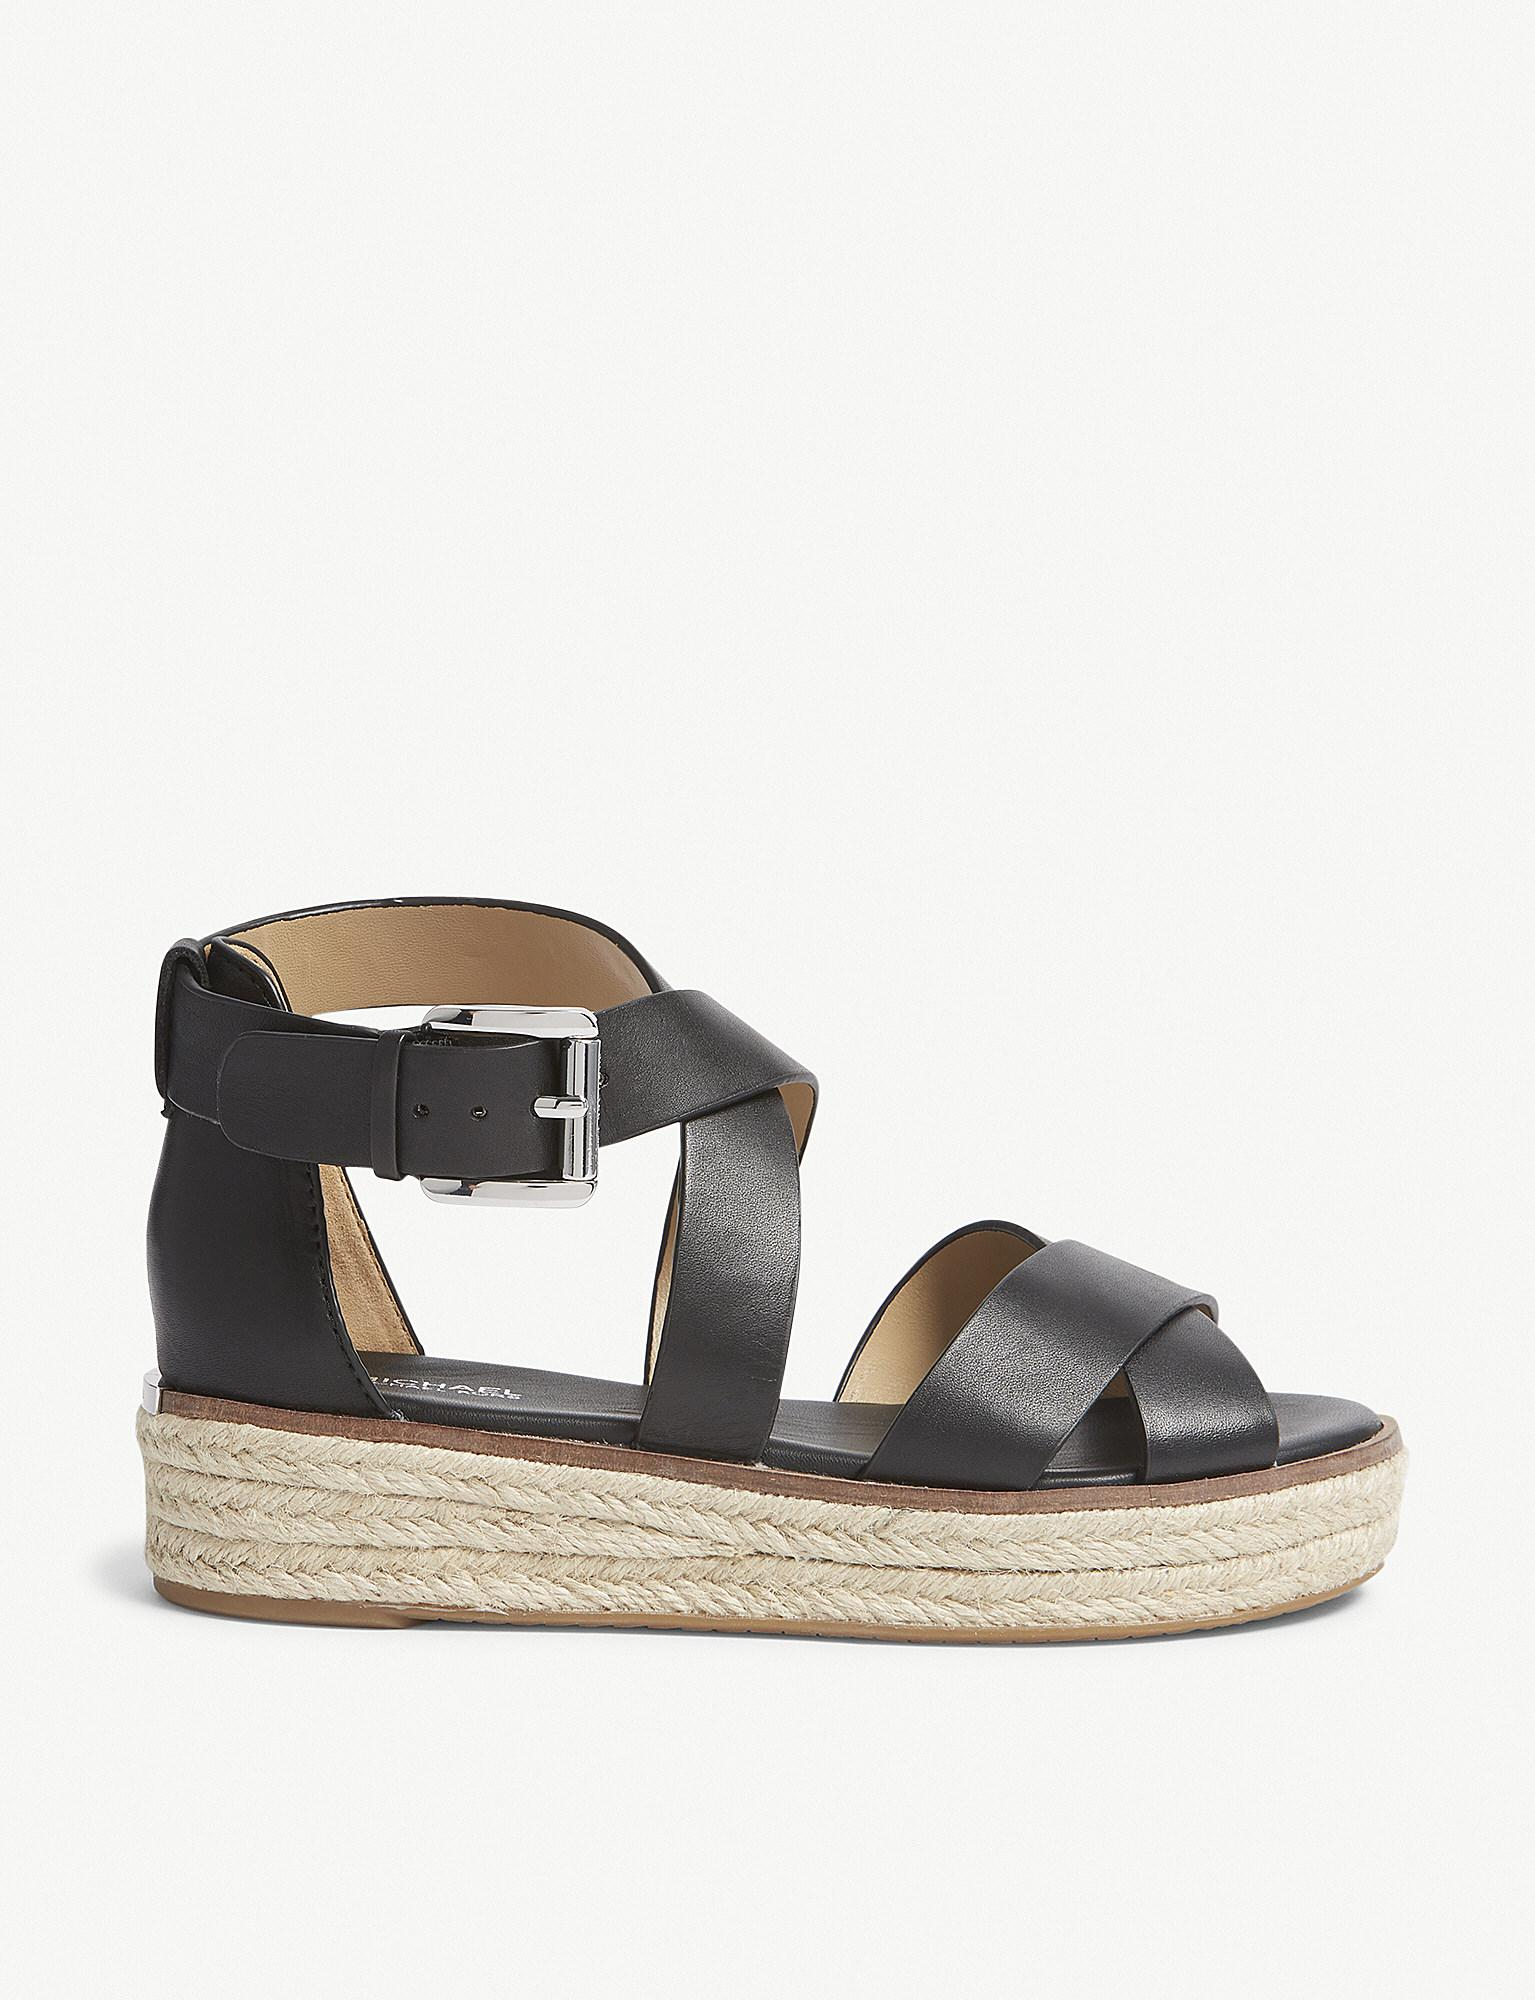 be320305a8a9 Lyst - Michael Michael Kors Darby Strappy Leather Sandals in Black